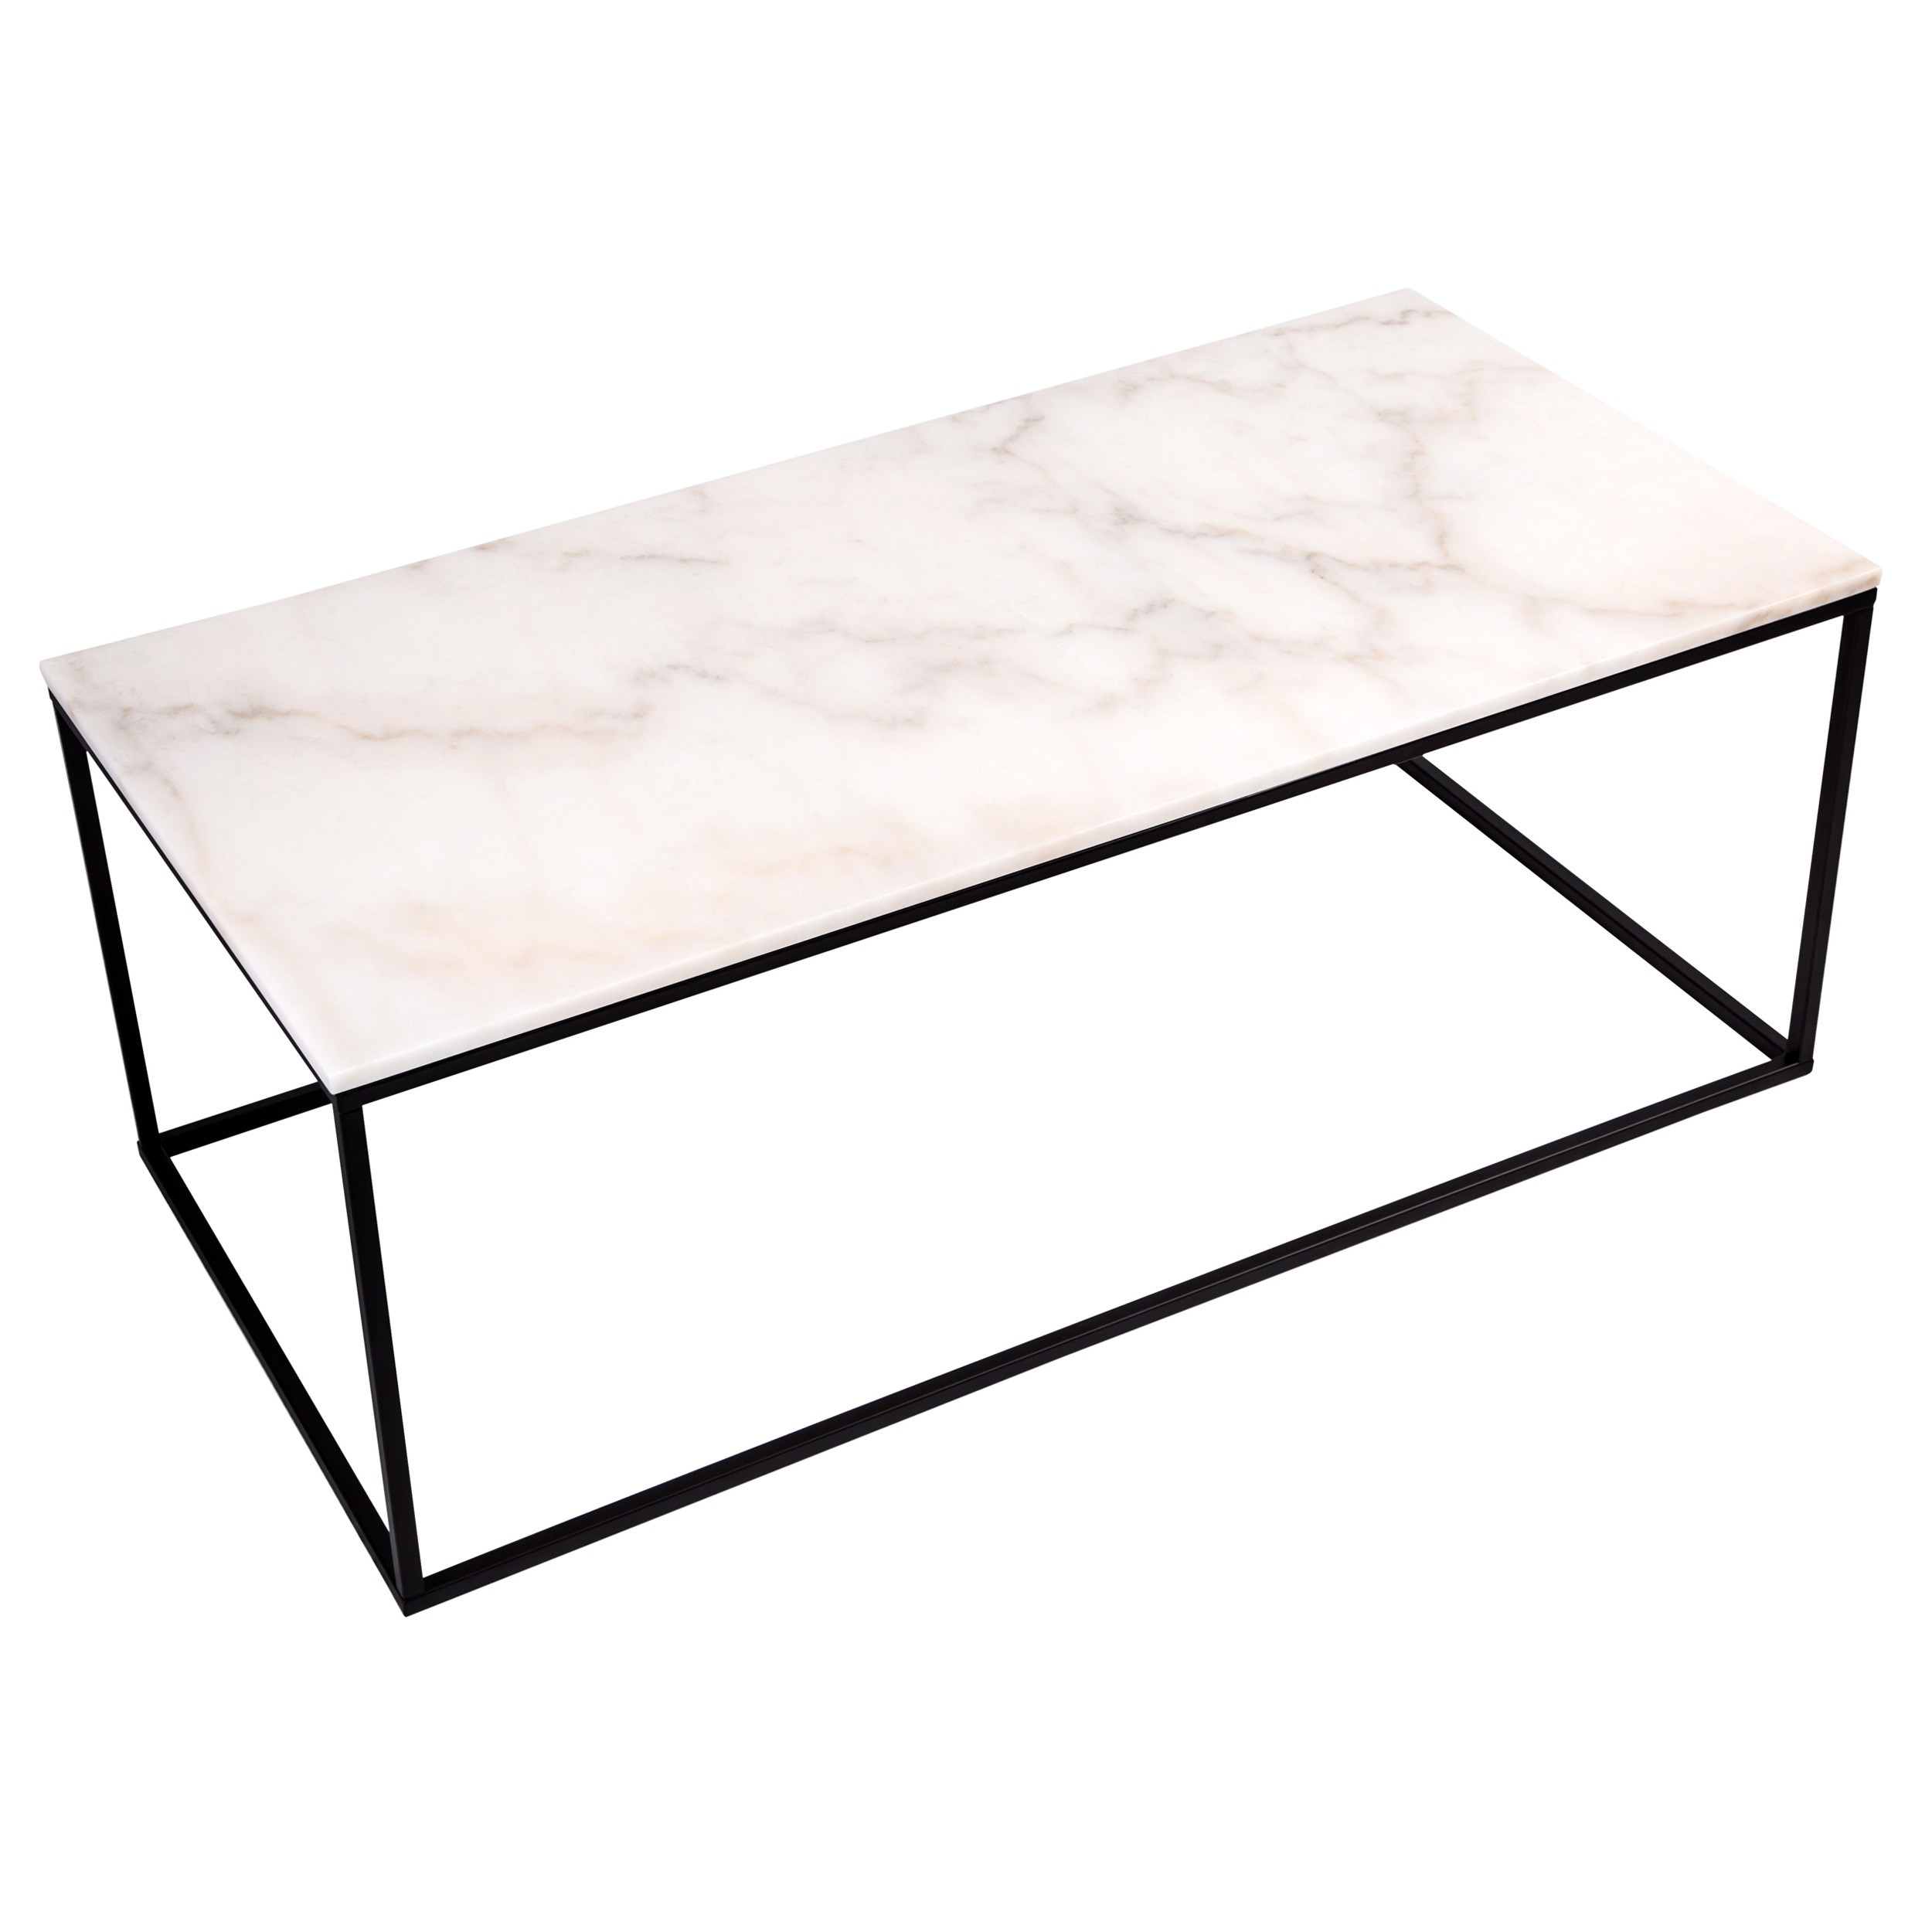 Table basse rectangulaire dagmar marbre blanche commandez les tables basses rectangulaires - Table marbre rectangulaire ...